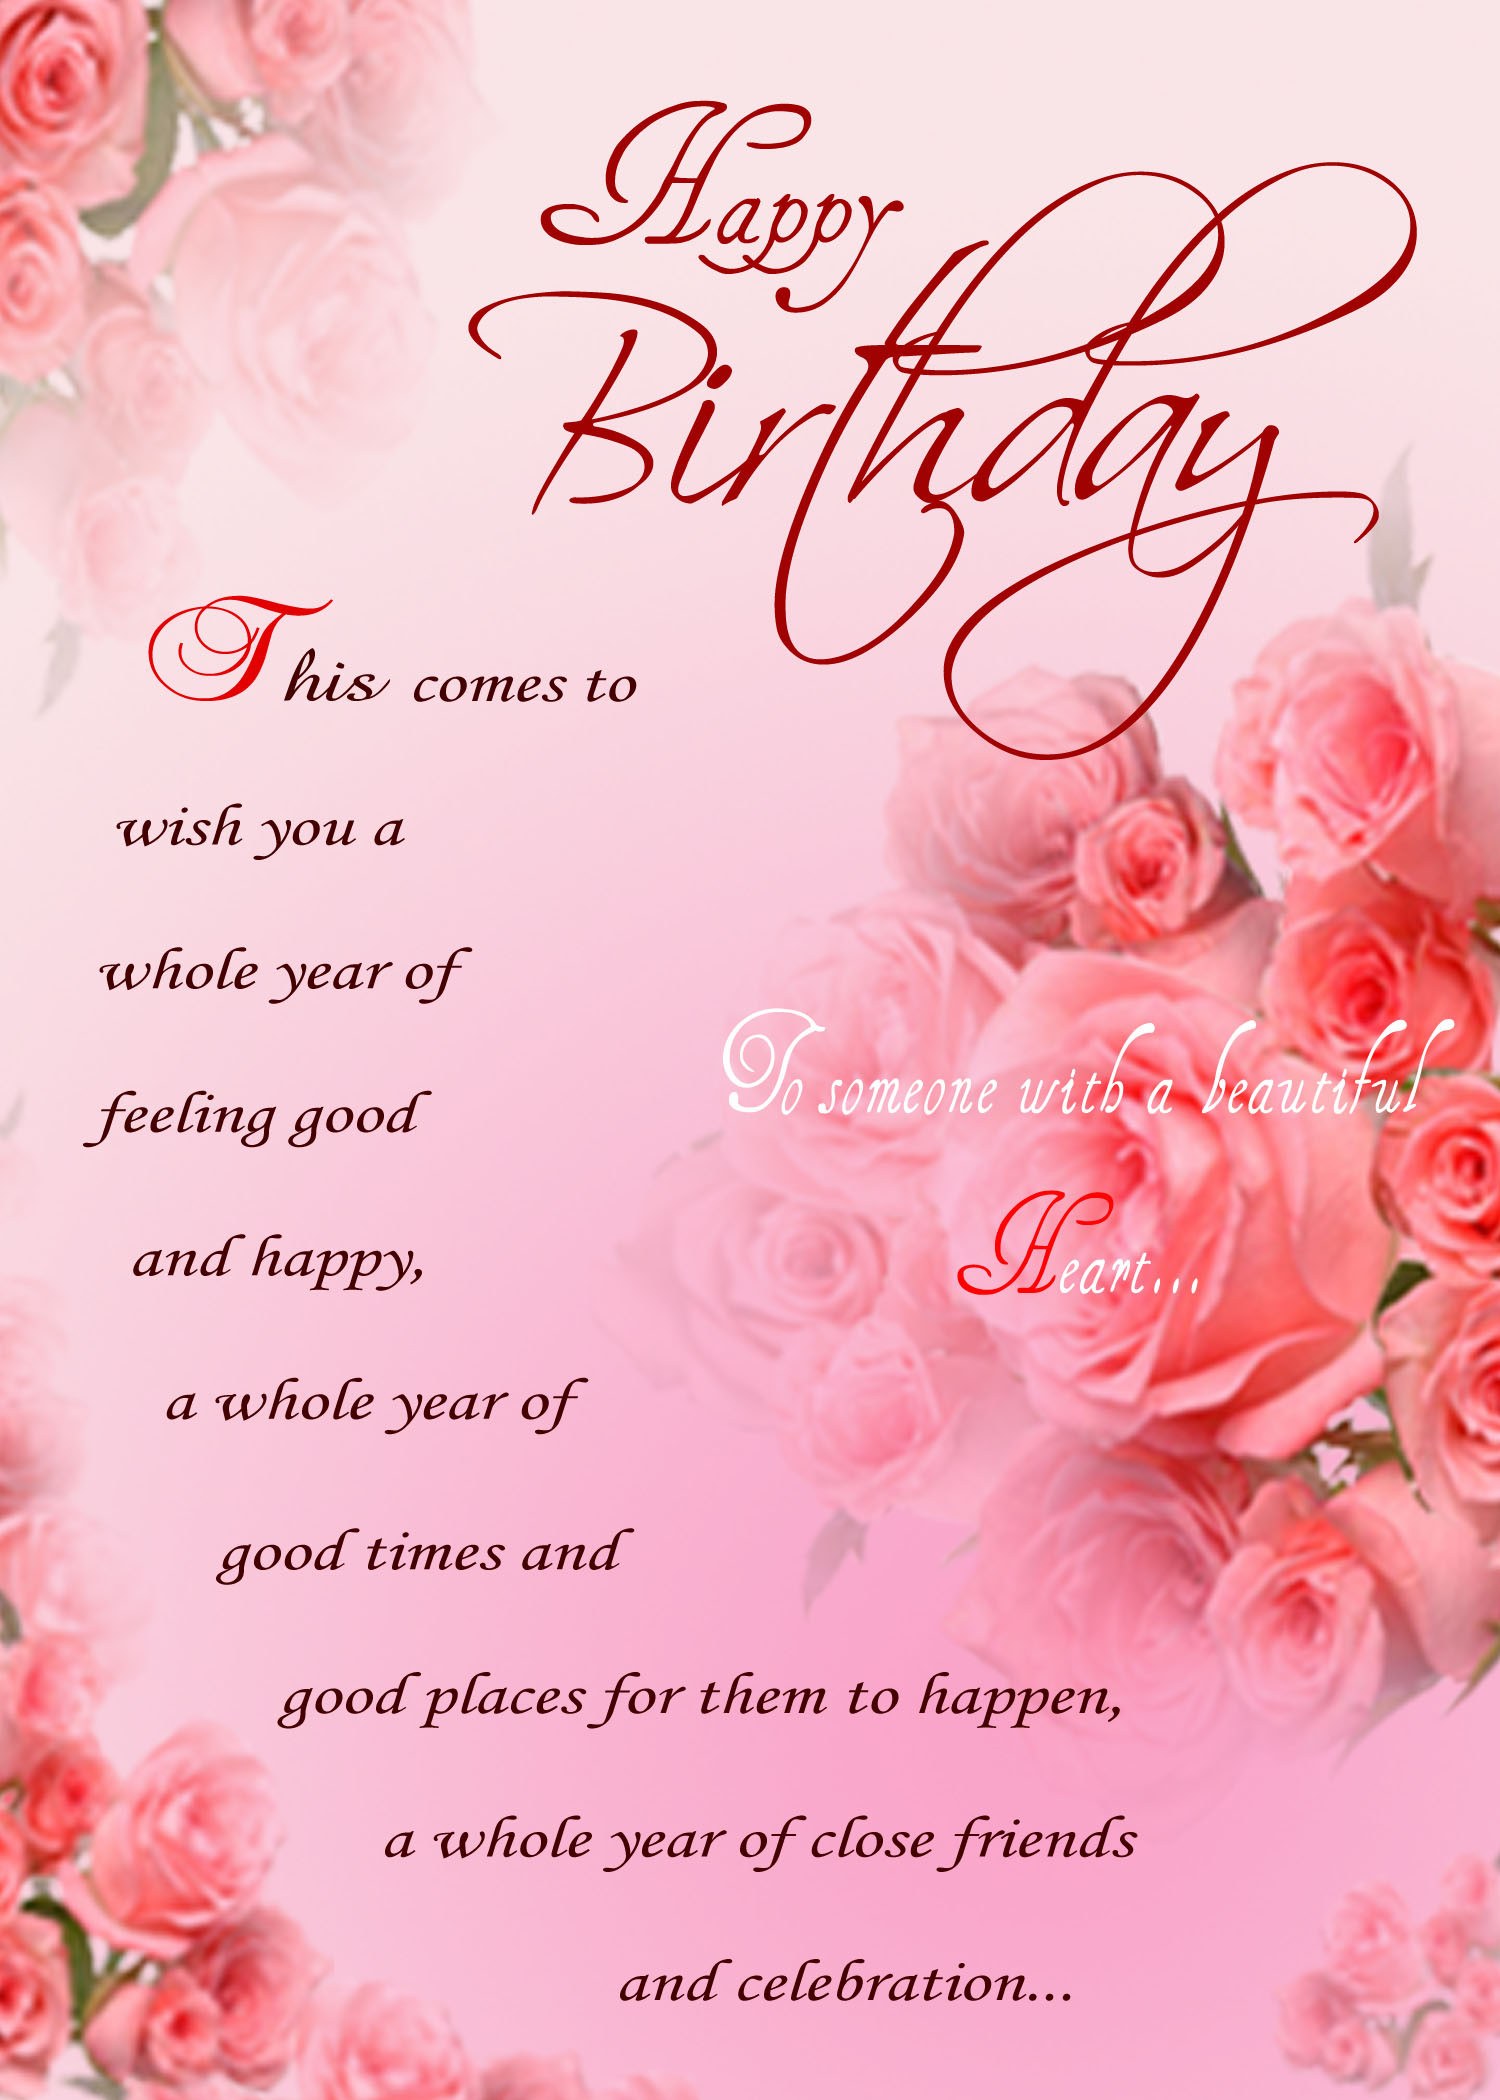 Best ideas about Examples Of Birthday Wishes . Save or Pin Birthday wishes email sample Now.